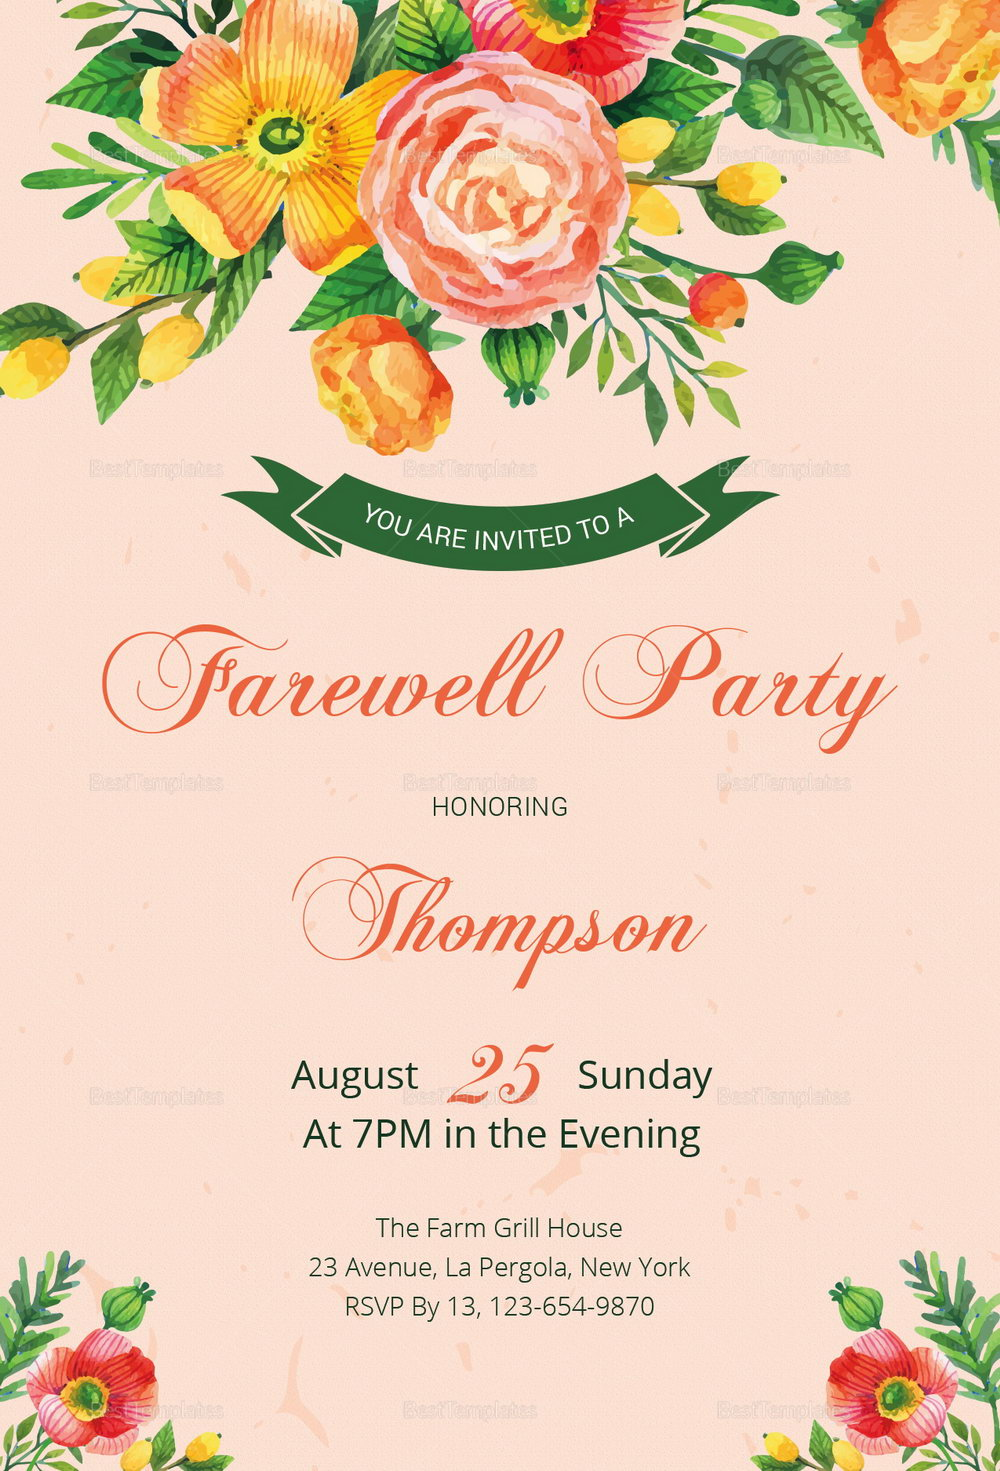 Farewell Party Invitation Email Template